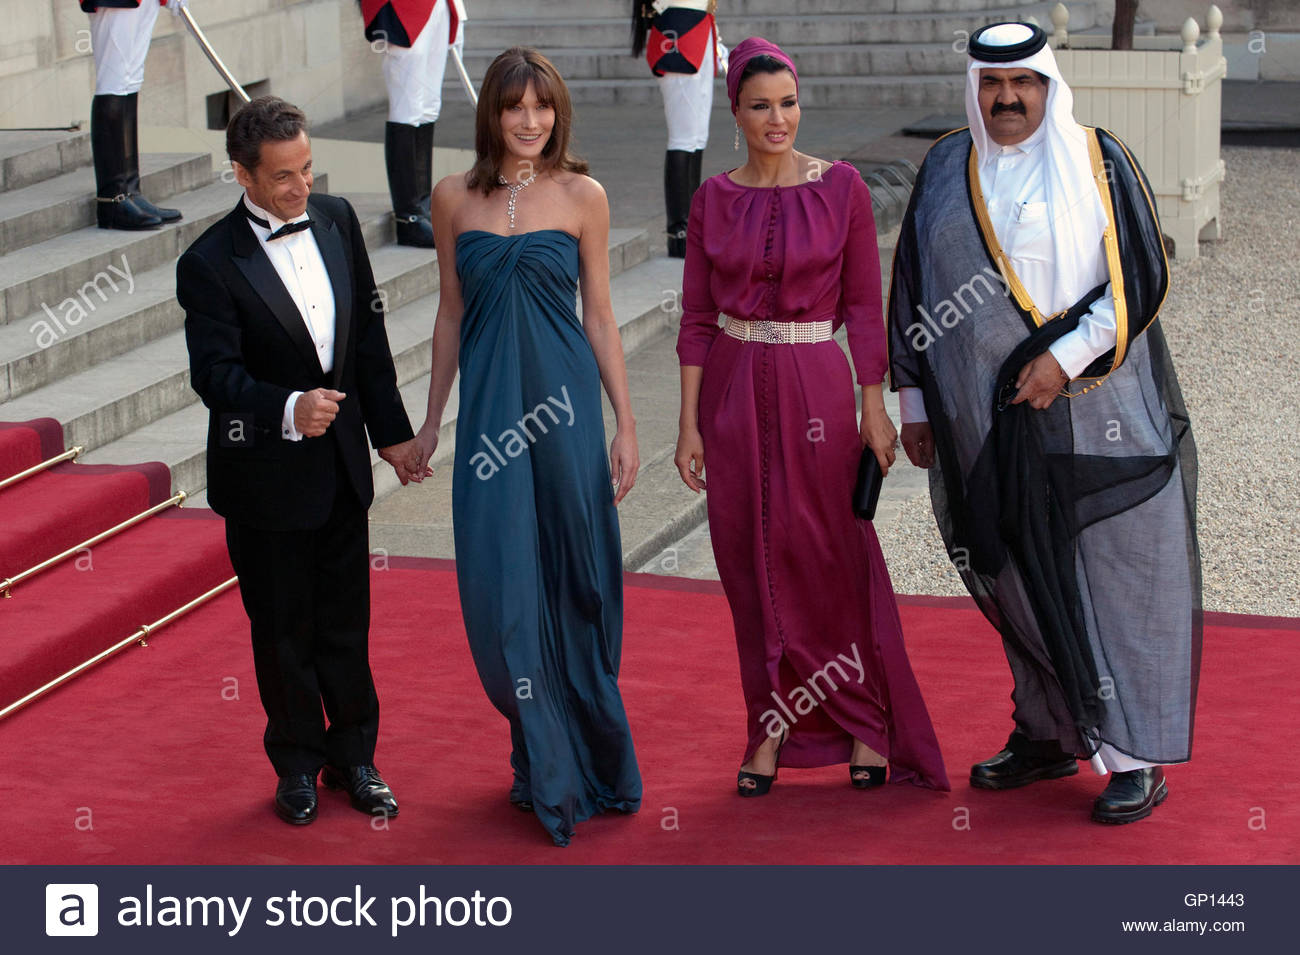 thani r and his wife sheikha mozah bint nasser al missned 2nd r are welcomed by france s president nicolas sarkozy and his wife carla bruni sarkozy